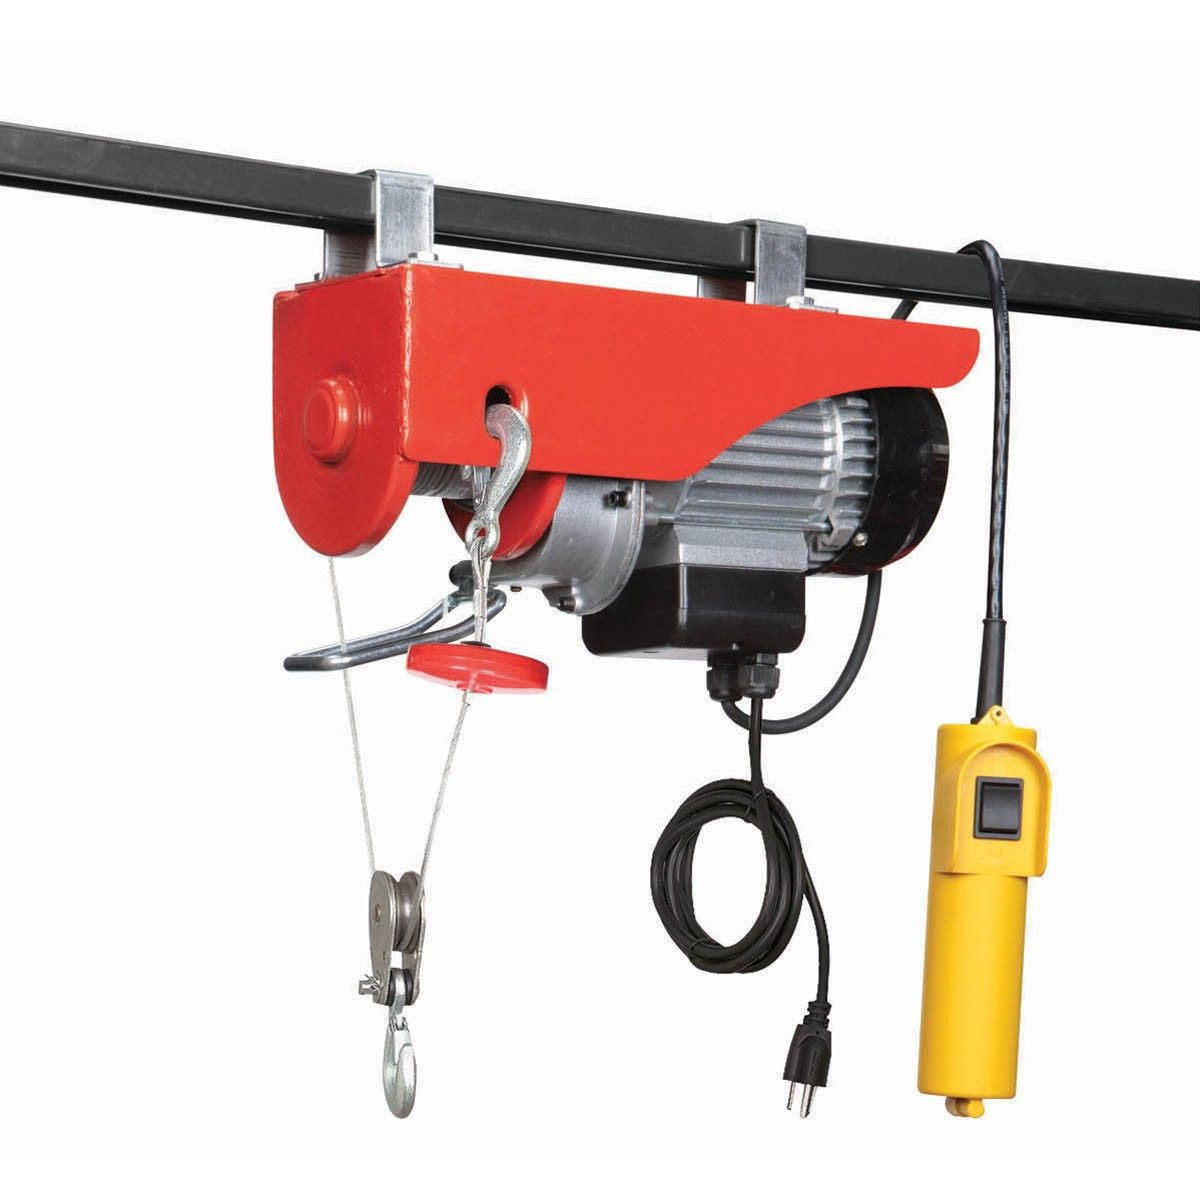 440 Lb. Electric Hoist With Remote Control In 2020